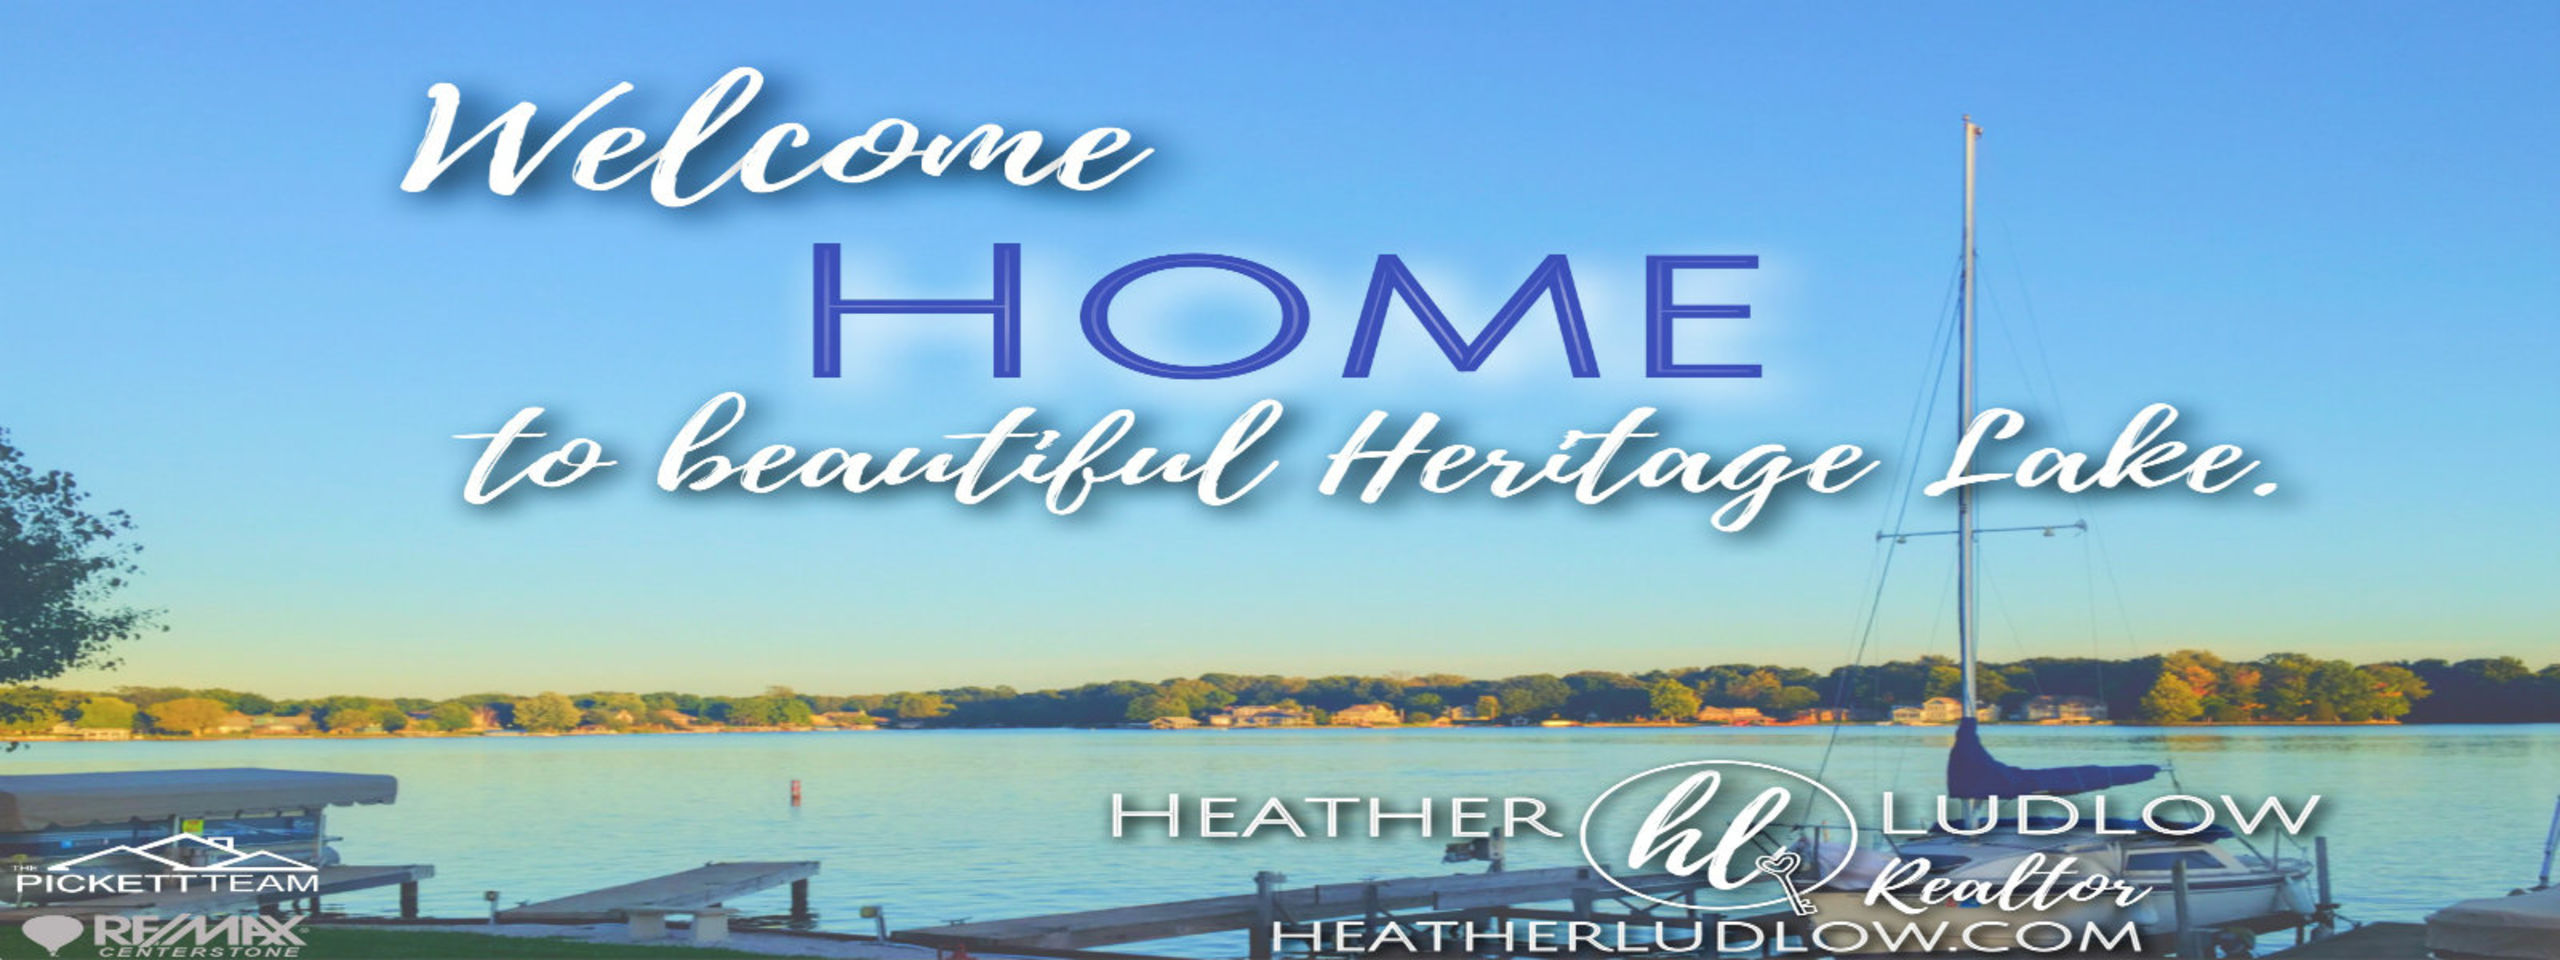 Search Heritage Lake Homes at the click of a button!